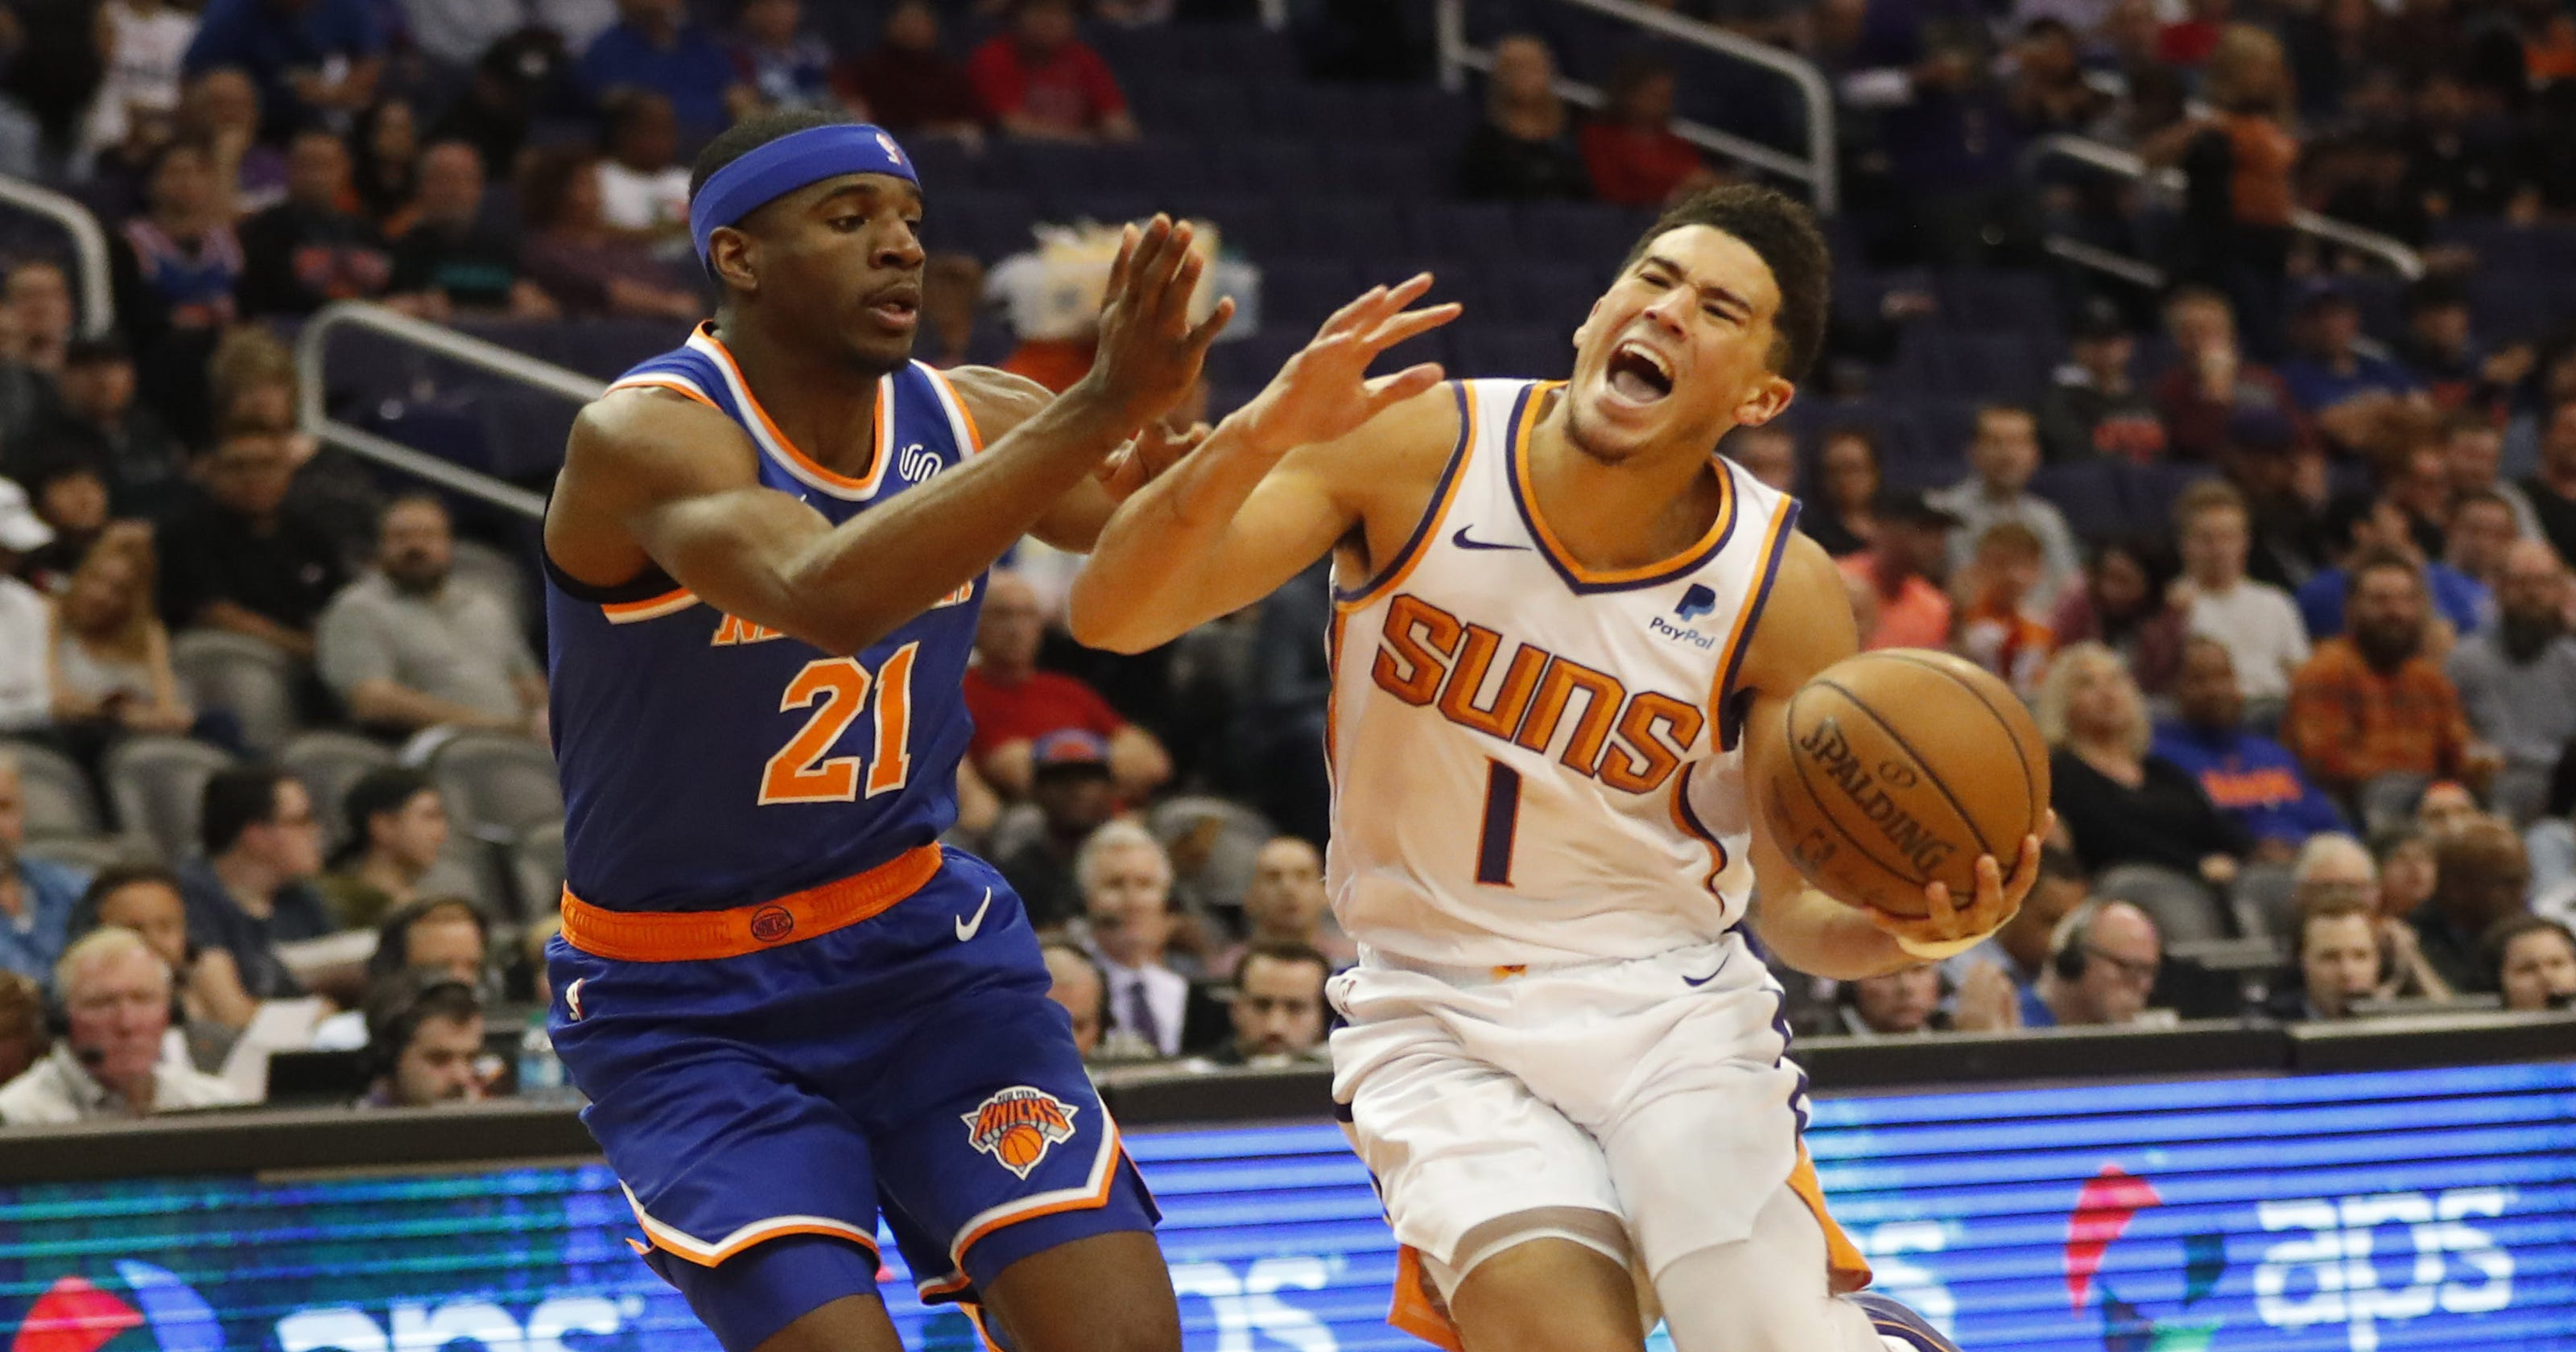 Devin Booker leads Phoenix Suns past New York Knicks with 41 points 6910008a3